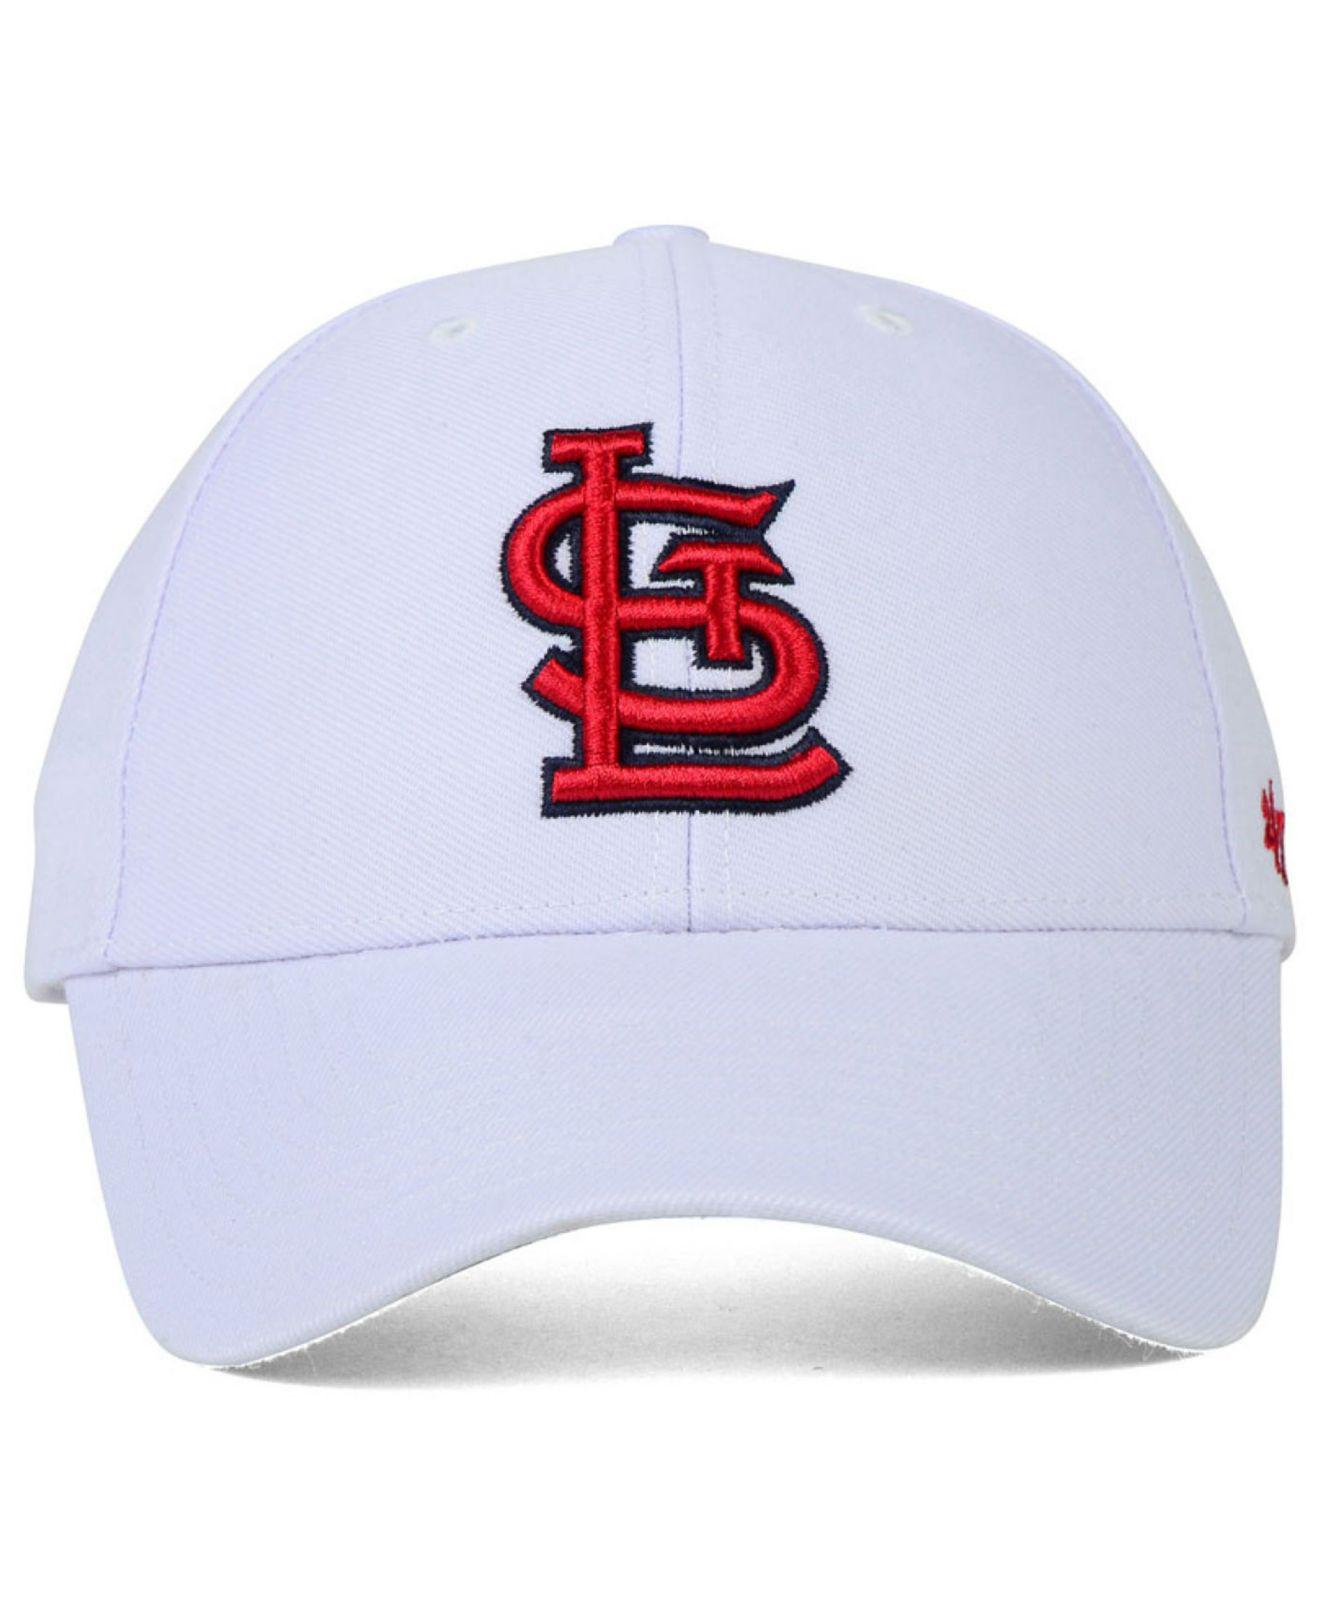 huge discount d4efc 280f9 Lyst - 47 Brand St. Louis Cardinals Mvp Curved Cap in White for Men